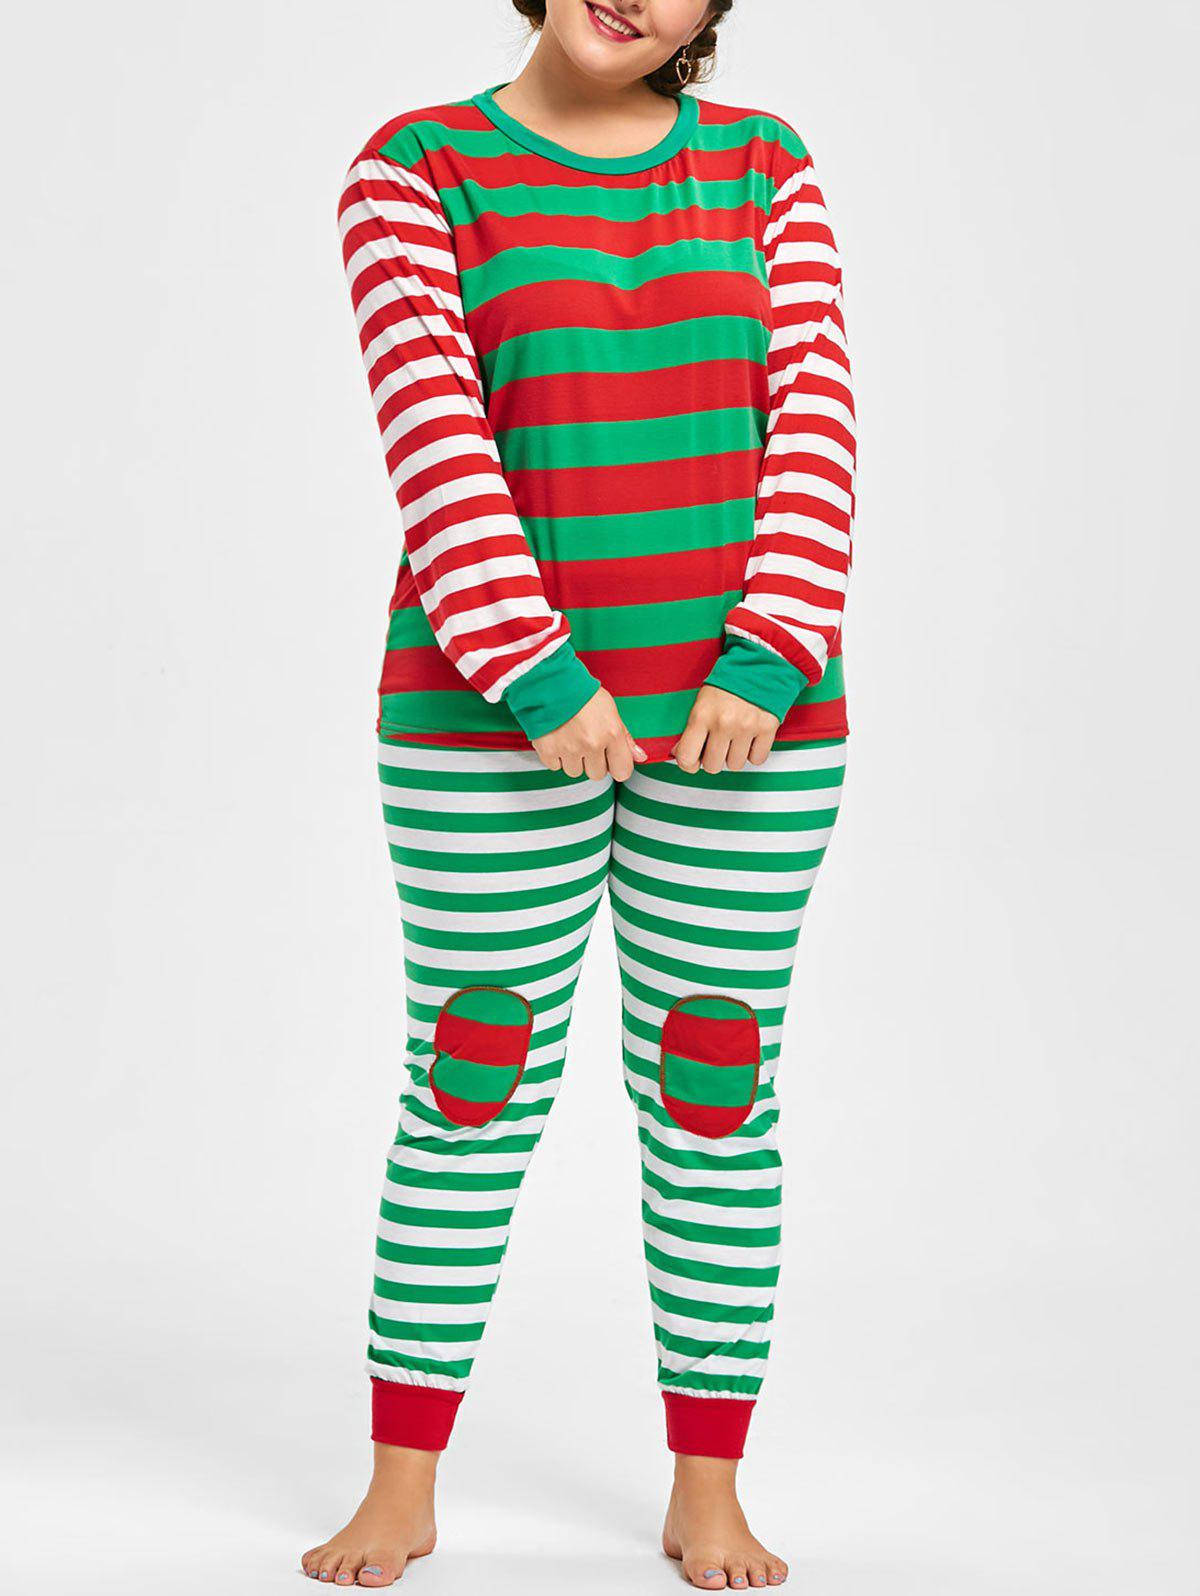 Plus Size Striped Christmas Pajama SetWOMEN<br><br>Size: 2XL; Color: RED AND GREEN; Material: Polyester; Pattern Type: Striped; Embellishment: None; Weight: 0.3700kg; Package Contents: 1 x Top  1 x Pants;